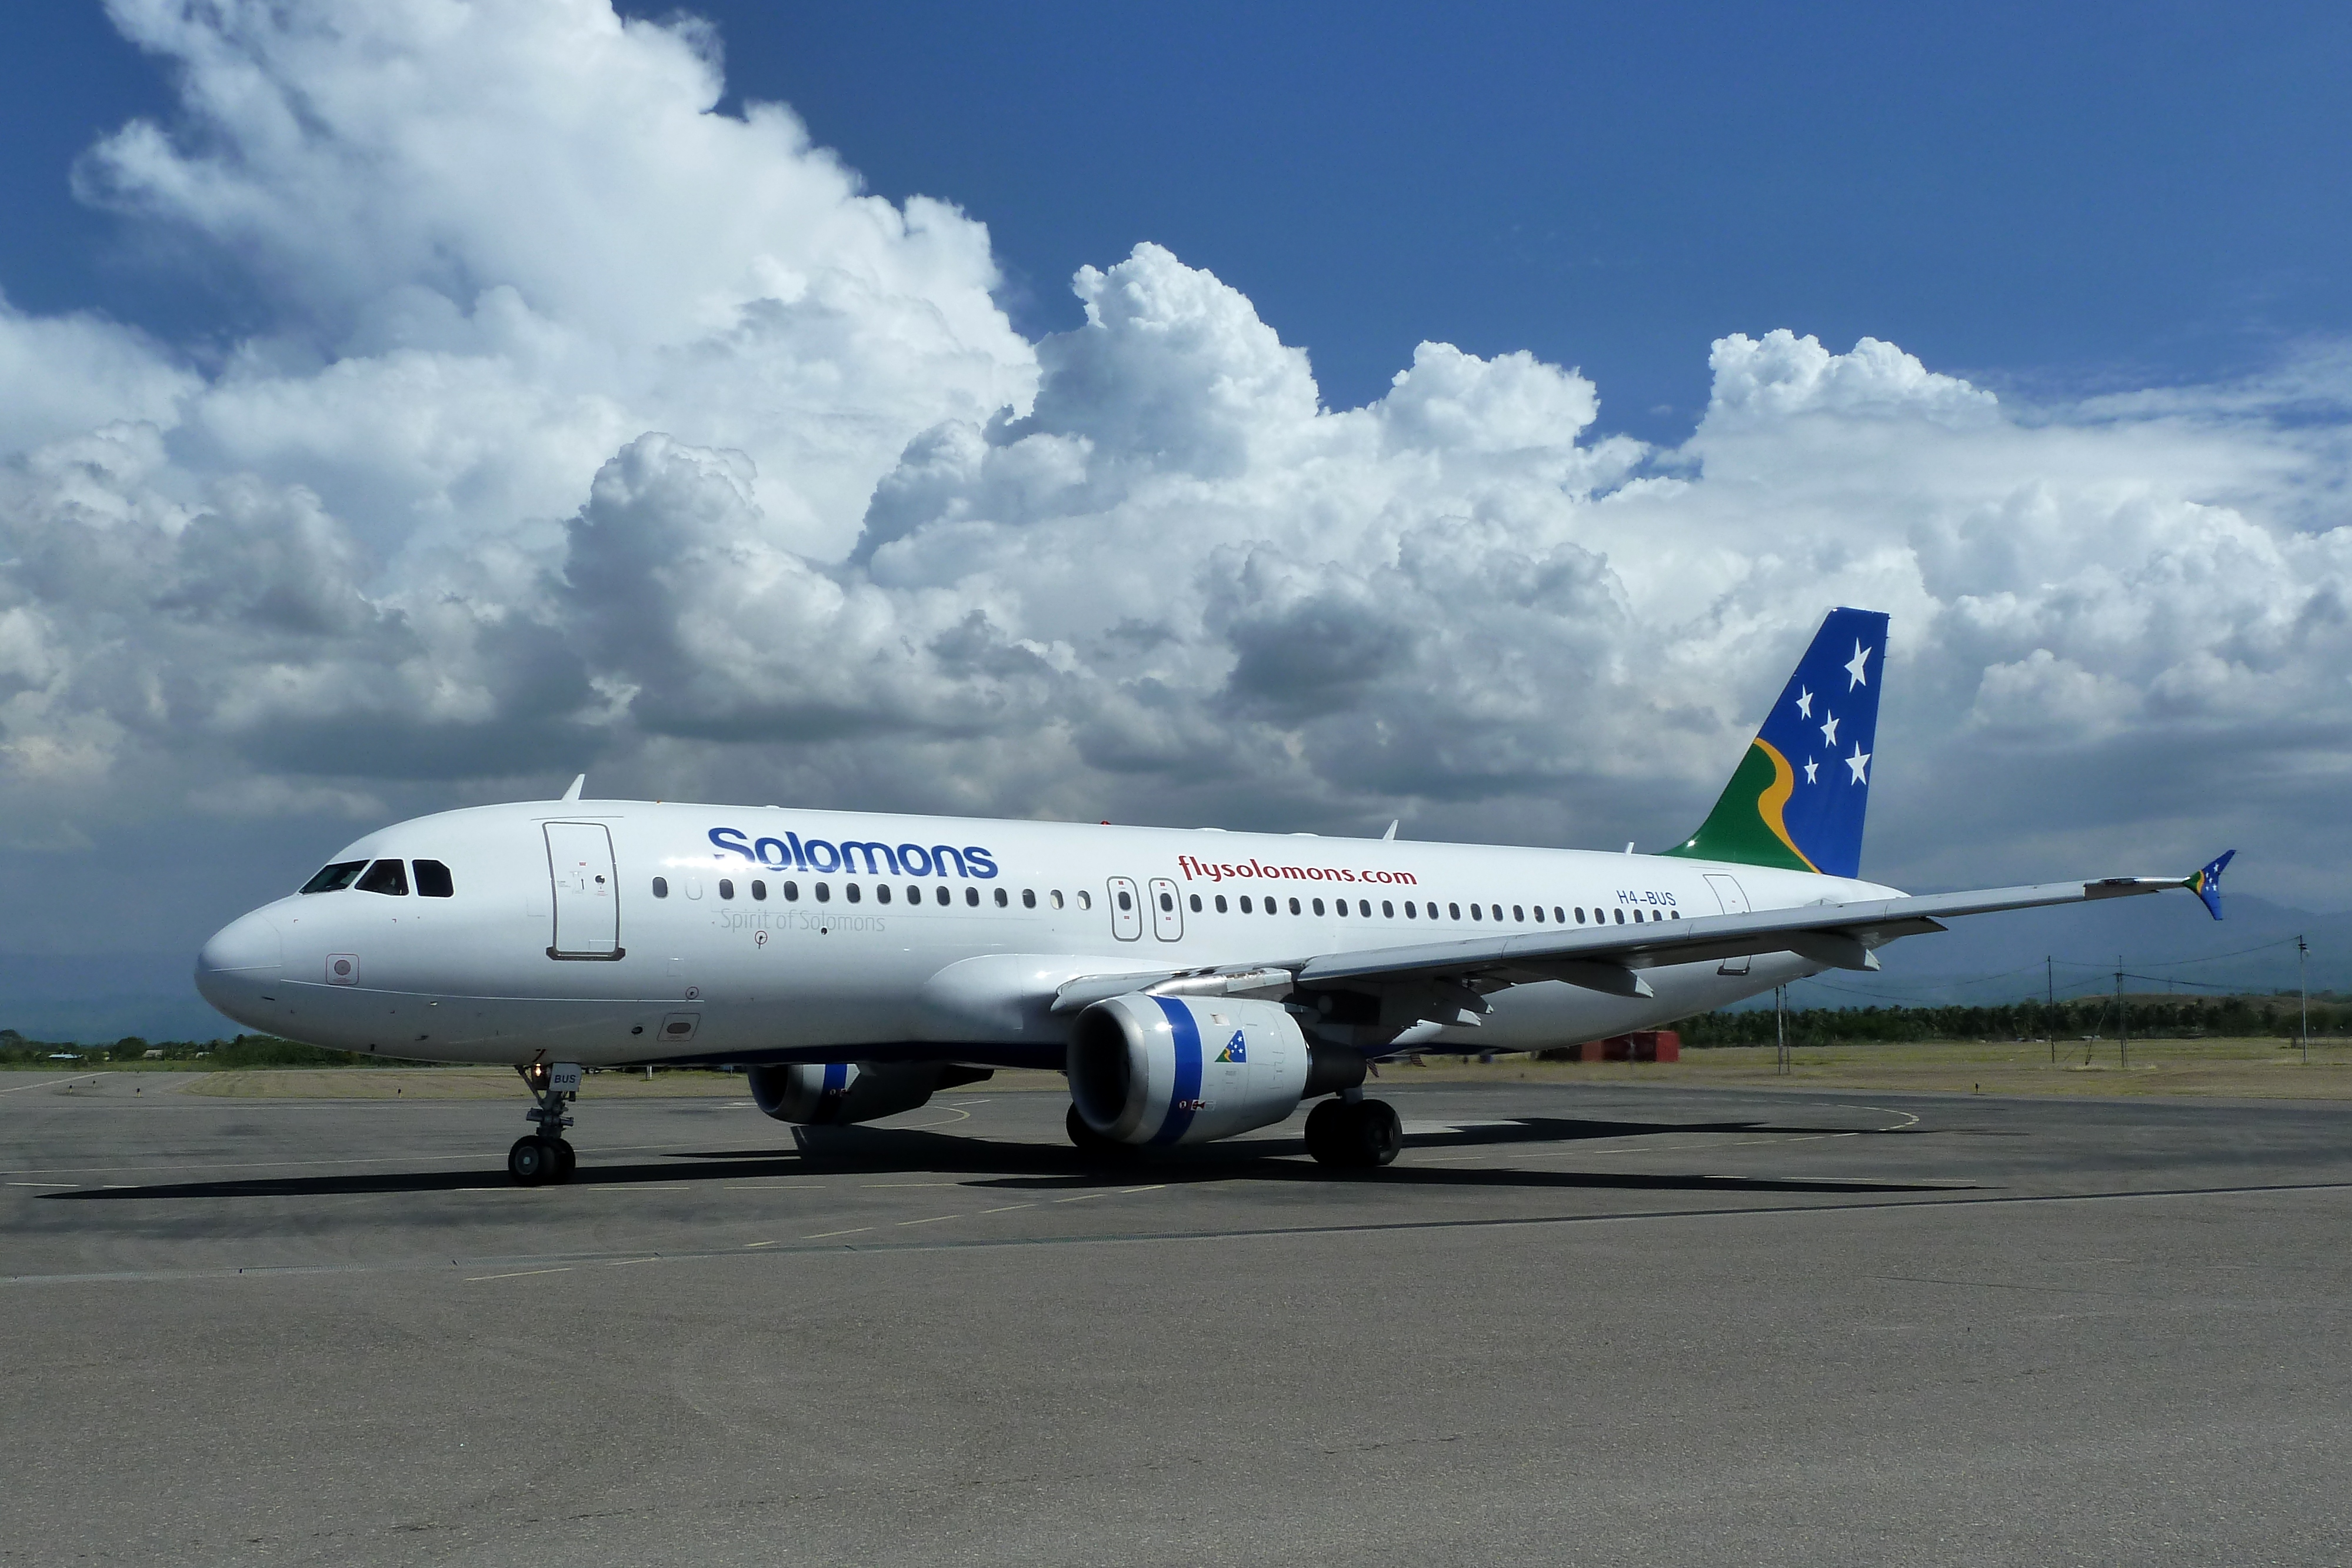 https://upload.wikimedia.org/wikipedia/commons/7/71/Solomon_Airlines_Airbus_A320-211_at_Honiara_Airport_in_2012.JPG